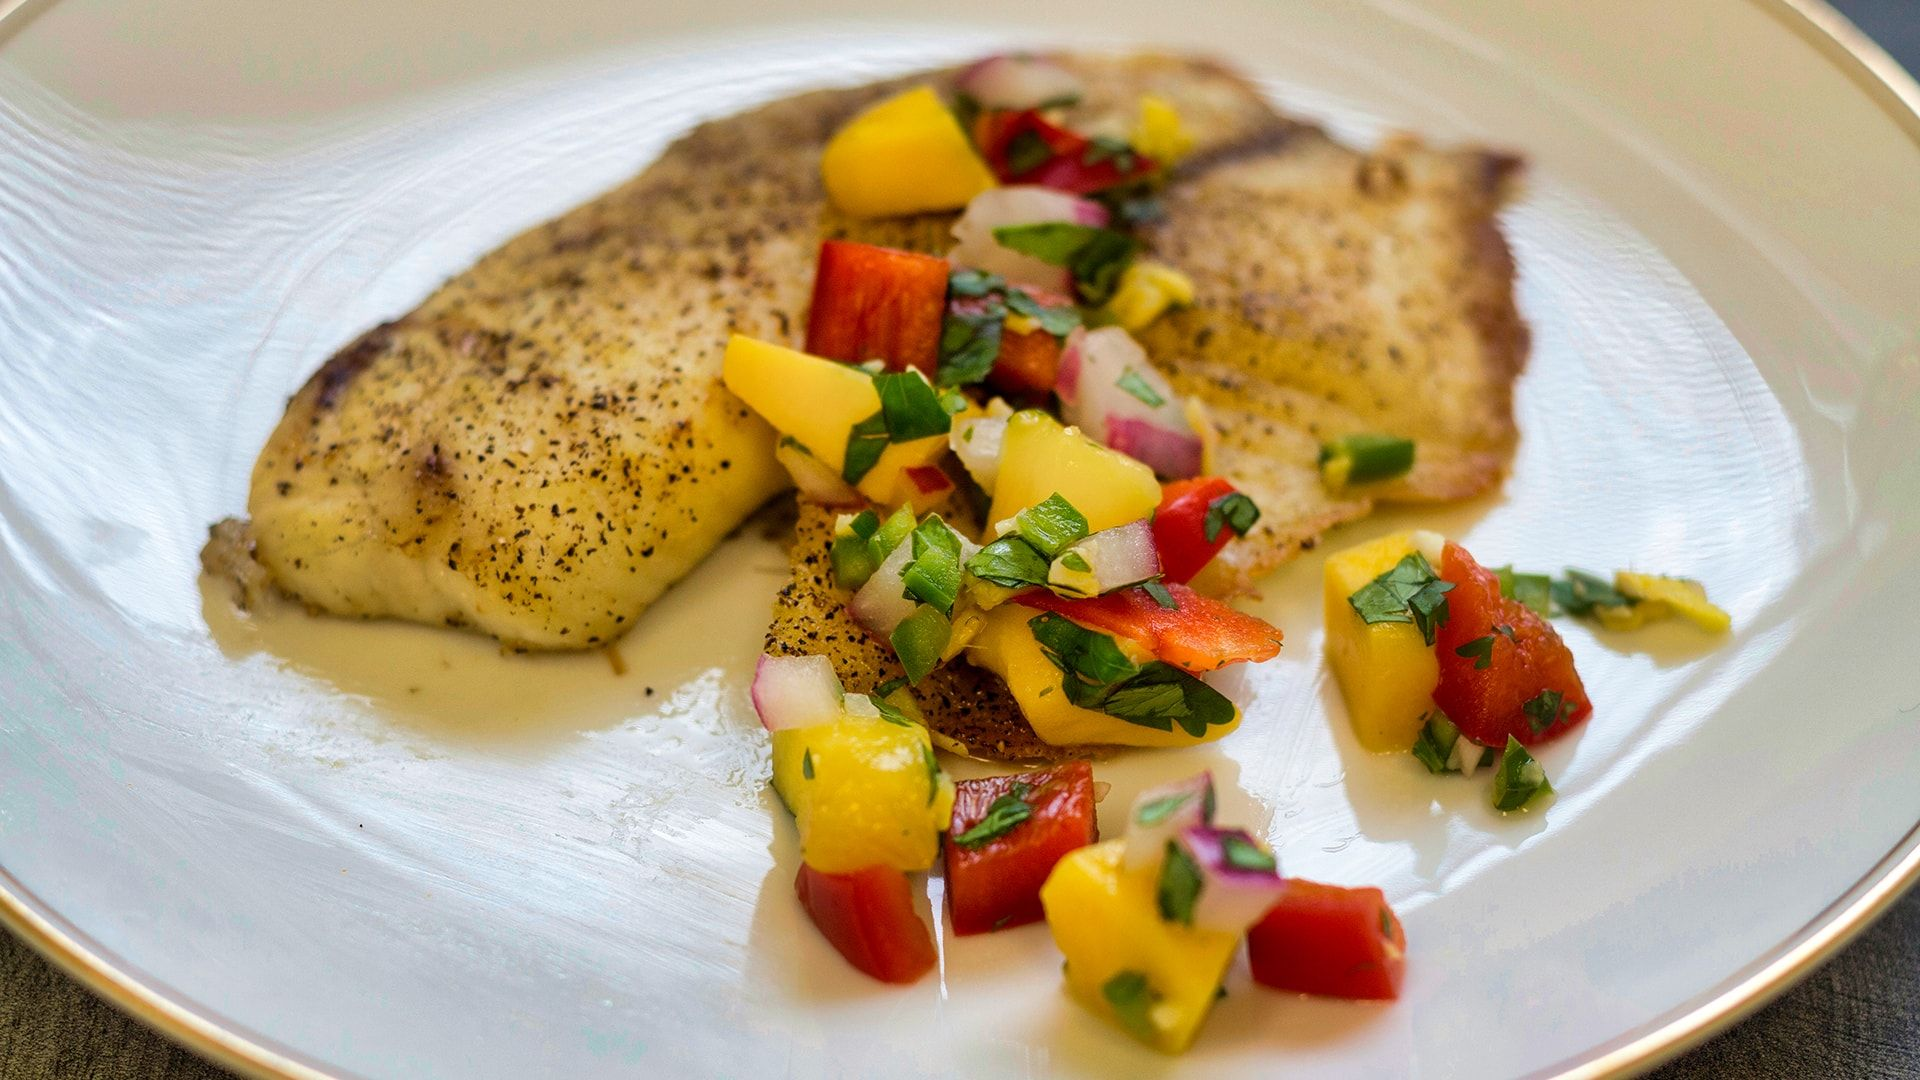 Our baked tilapia with mango salsa recipe is a brilliant